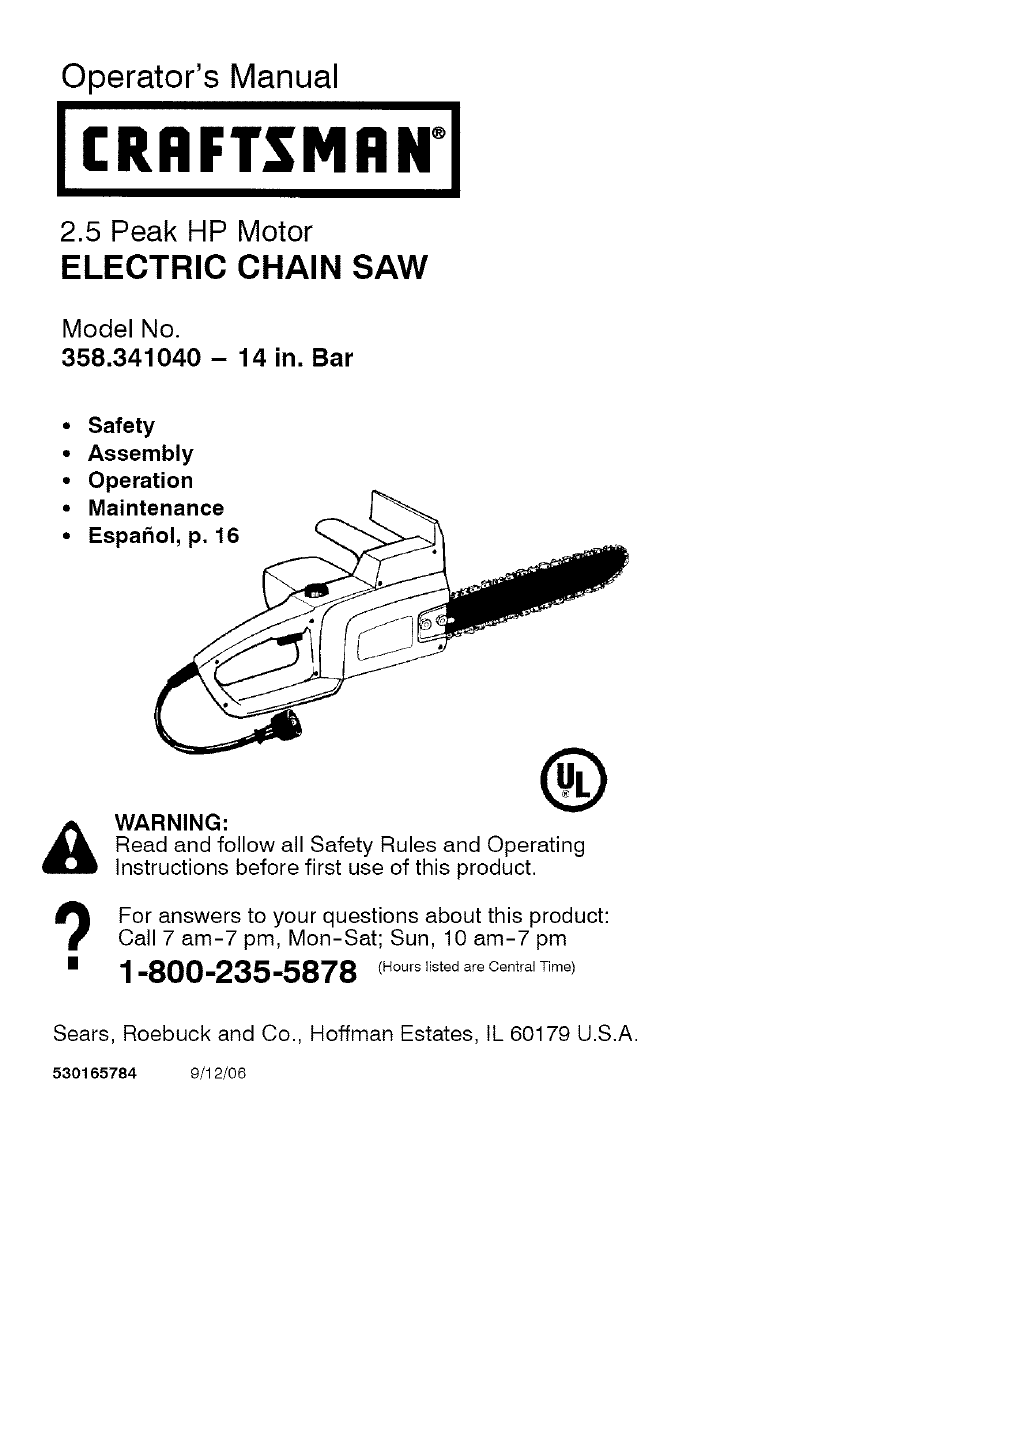 Craftsman 358341040 user manual electric chainsaw manuals and guides craftsman 358341040 user manual electric chainsaw manuals and guides l0609406 greentooth Choice Image